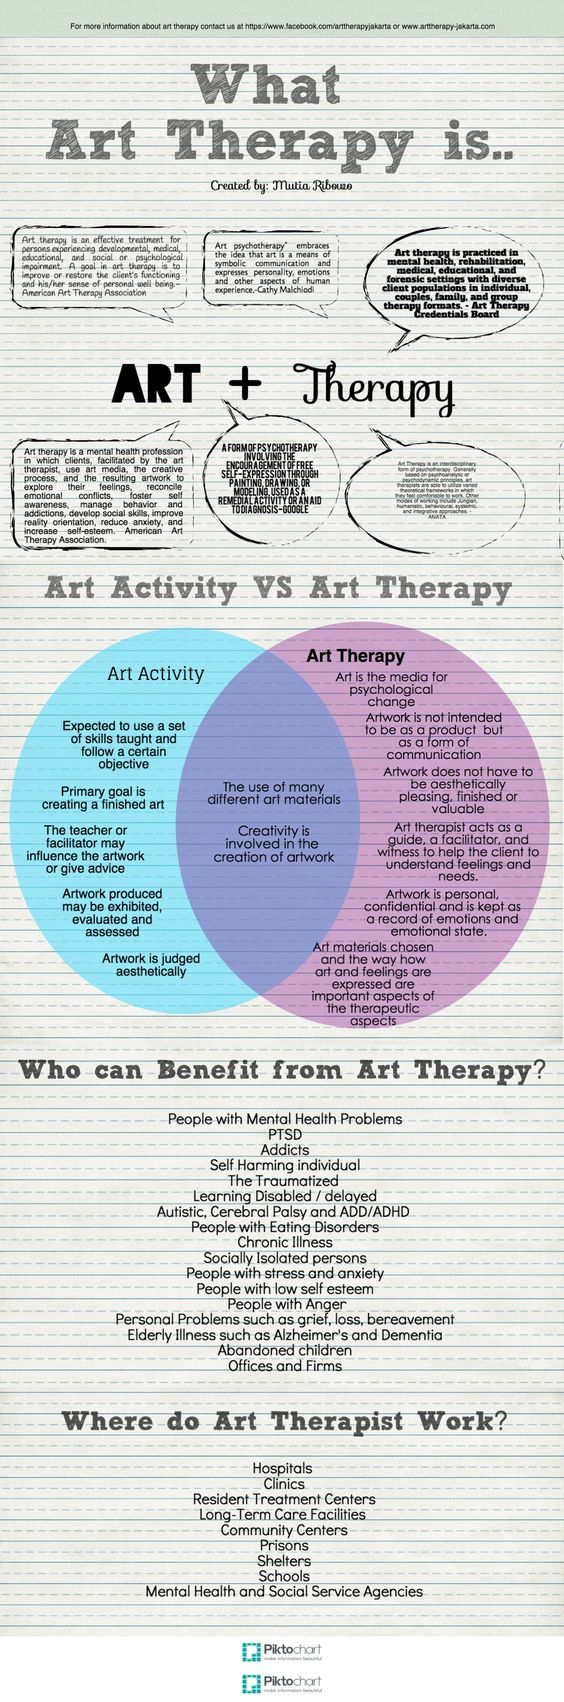 Information about art therapy, how art therapy differ from art activities, and who can benefit art therapy. #arttherapy